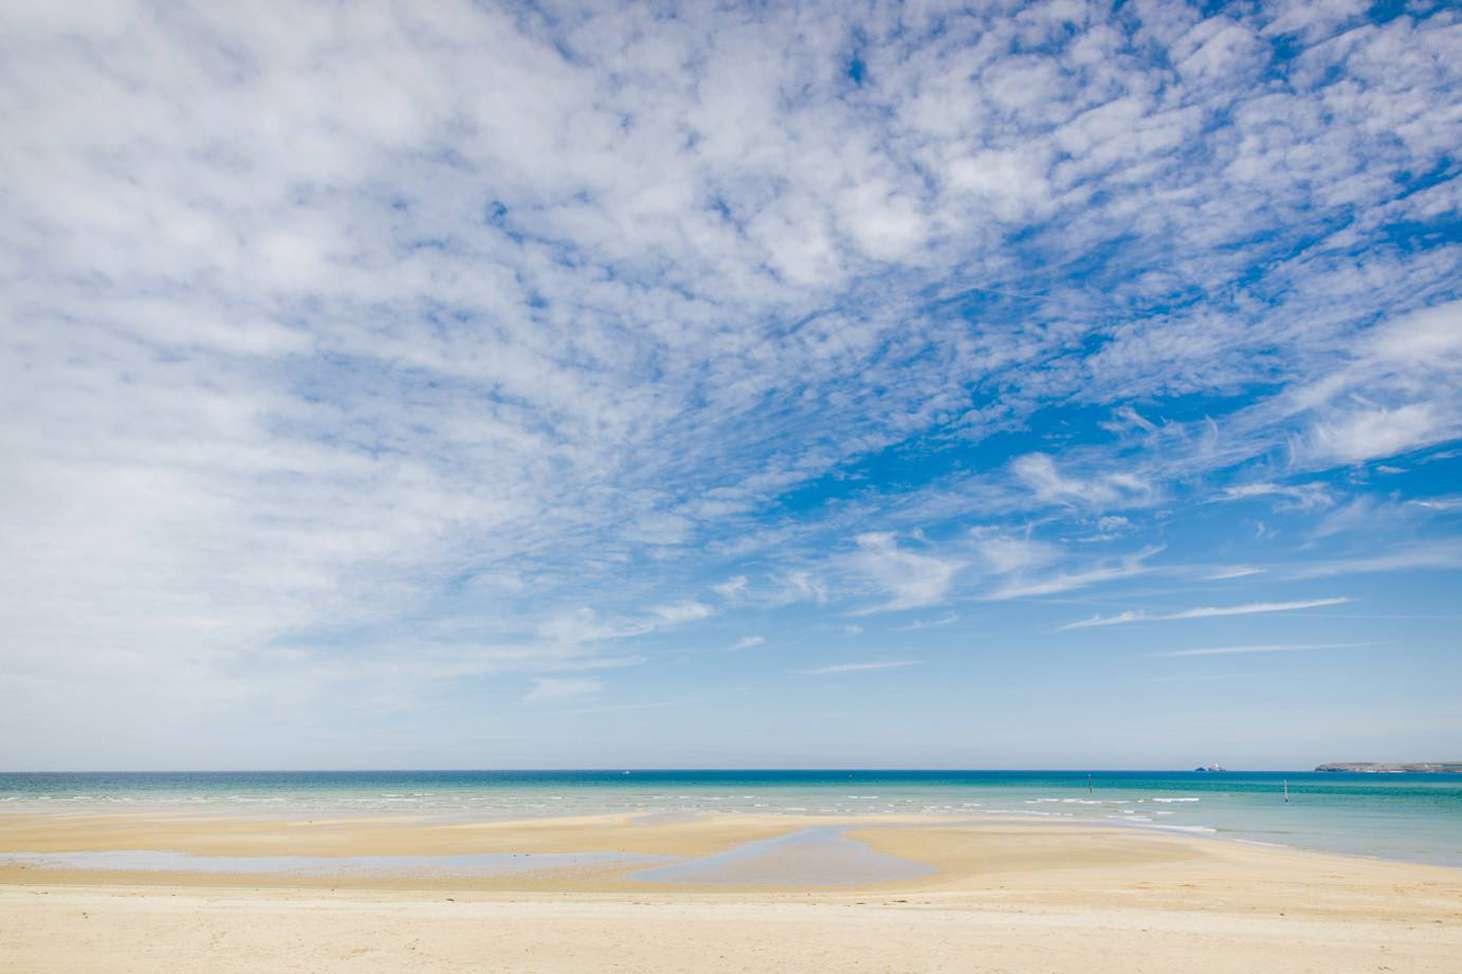 cornwall padstow st ives travel photography saran ann wright 011